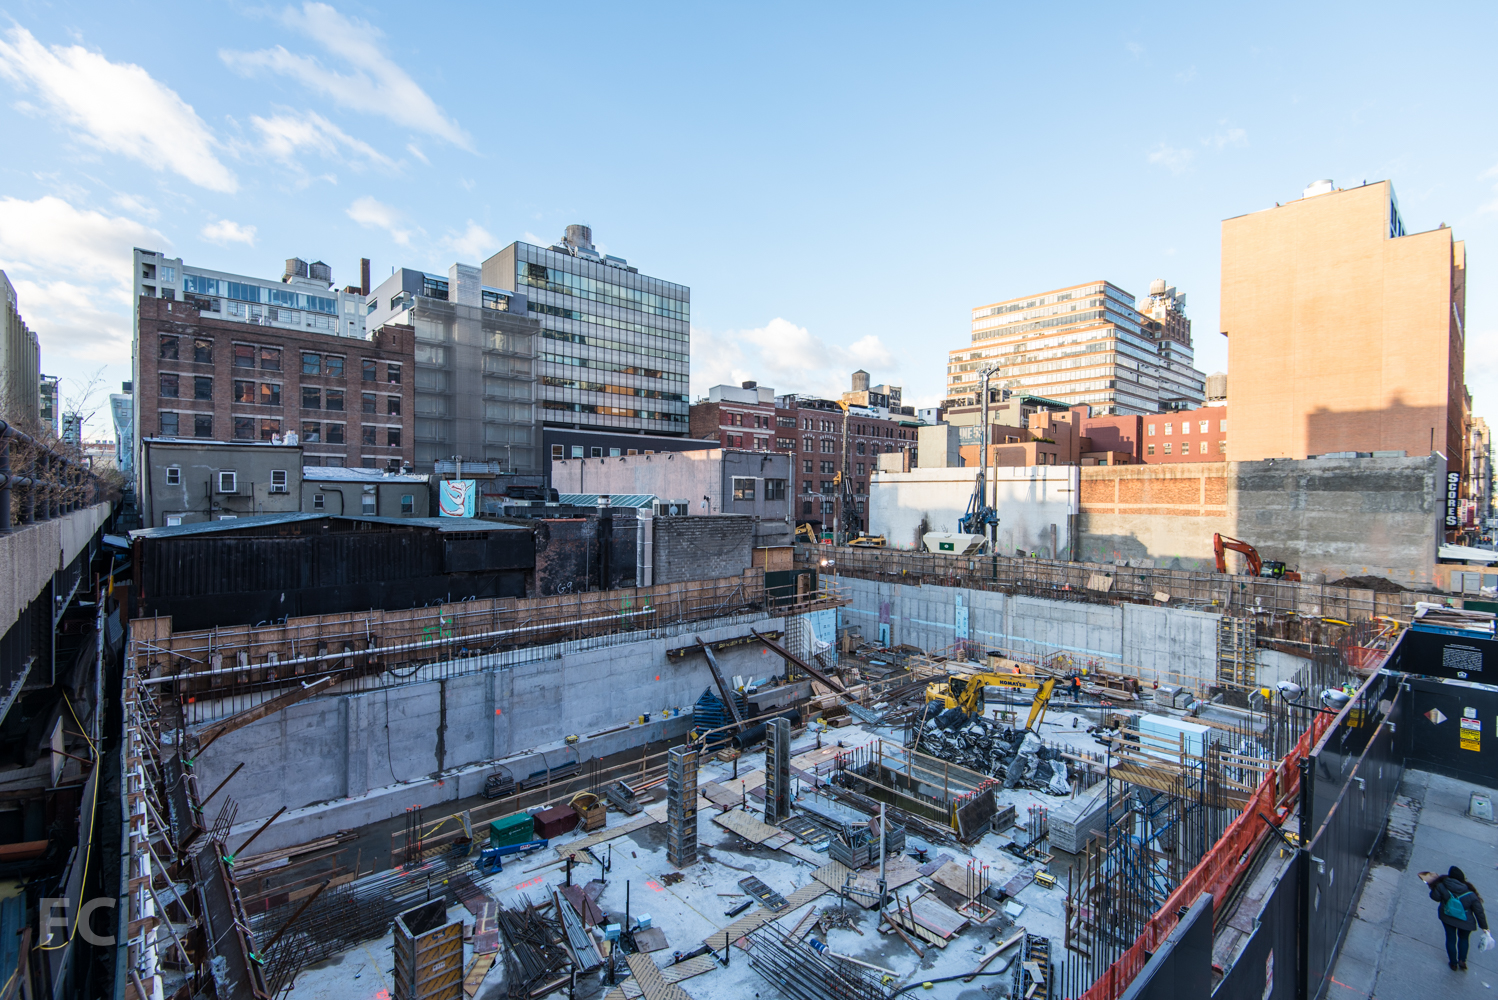 Northeast corner of the site from the High Line's West 28th Street stairs.